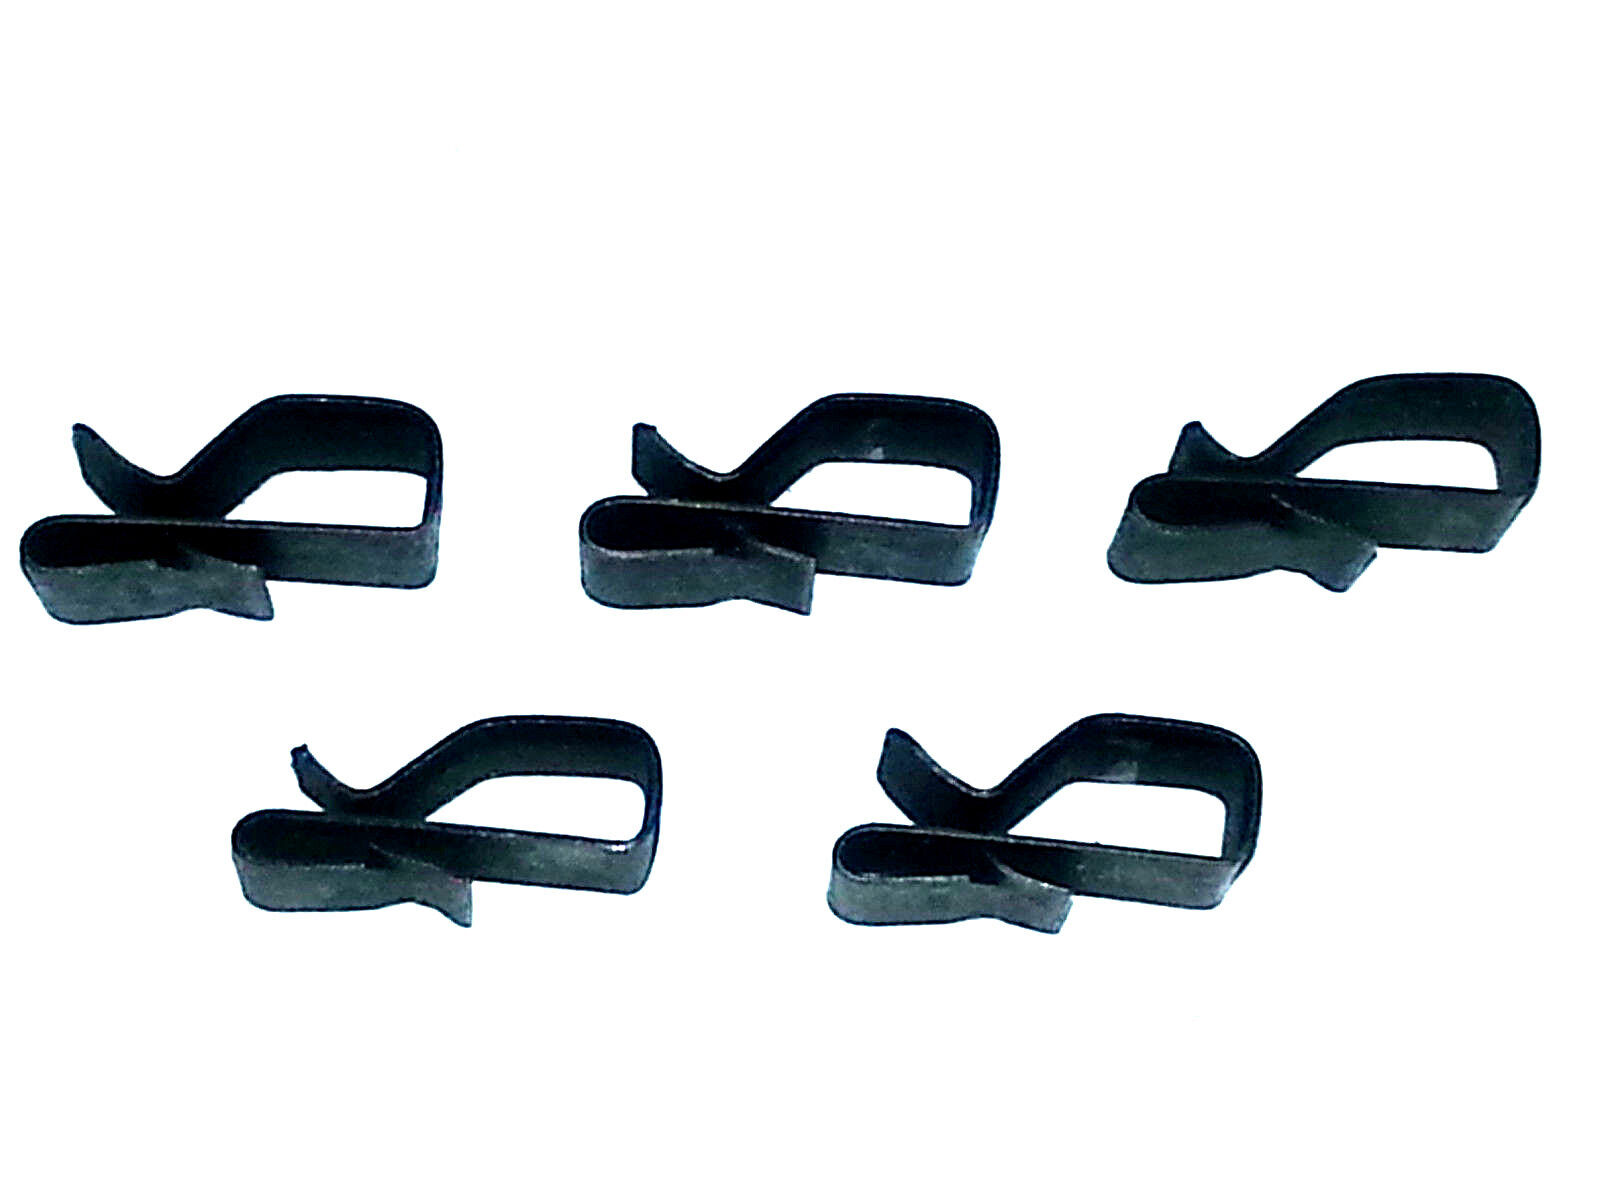 Chrysler Dodge Head Light Tail Lamp Engine Dash Wiring Harness Clamp Clamps Clips 5pc C 1 Of 9free Shipping See More